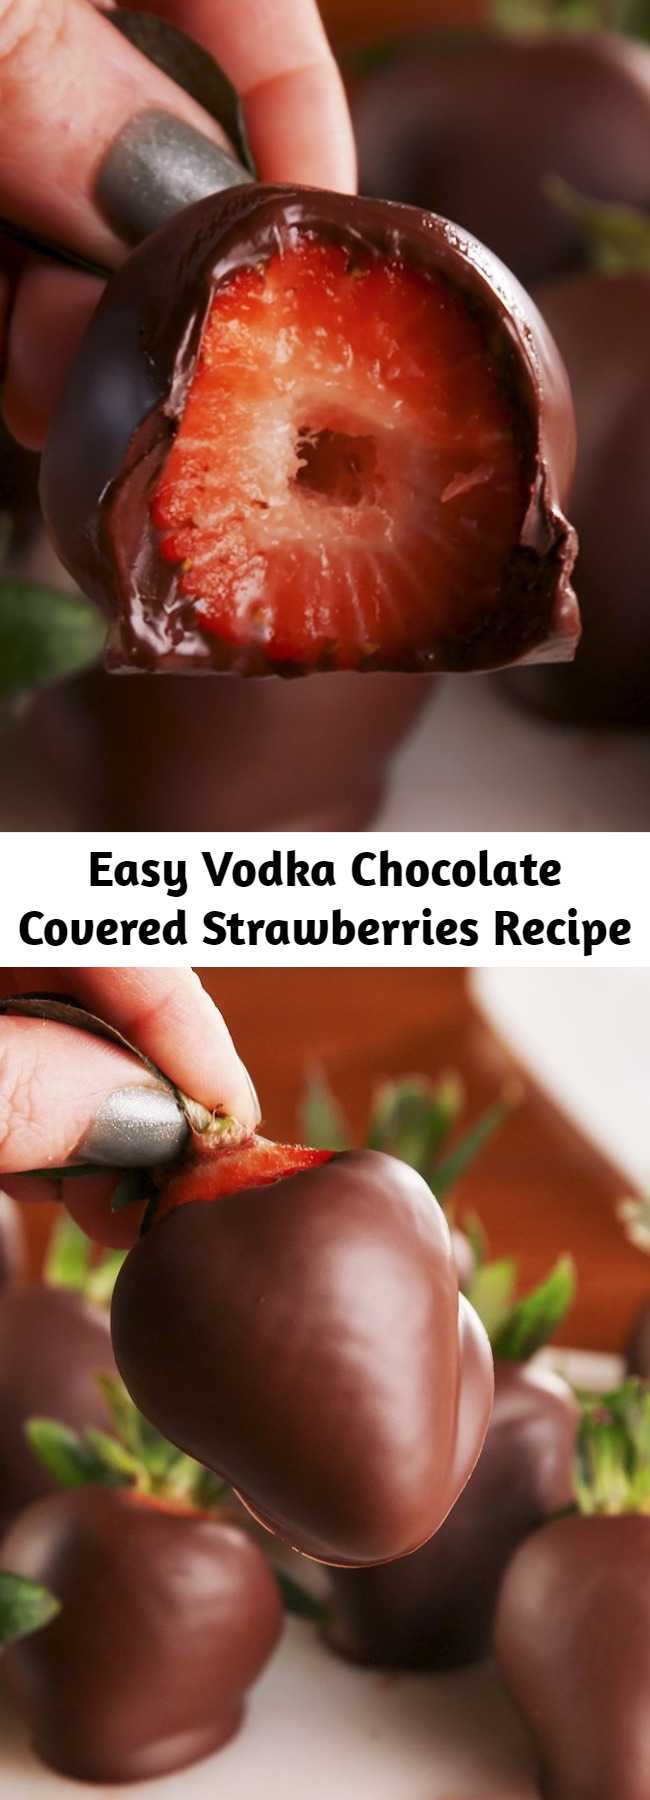 Easy Vodka Chocolate Covered Strawberries Recipe - Soaking your strawberries in vodka is the best gift you can give yourself. #easy #recipe #vodka #chocolate #strawberries #alcohol #adults #valentines #valentinesday #galentines #party #ideas #cute